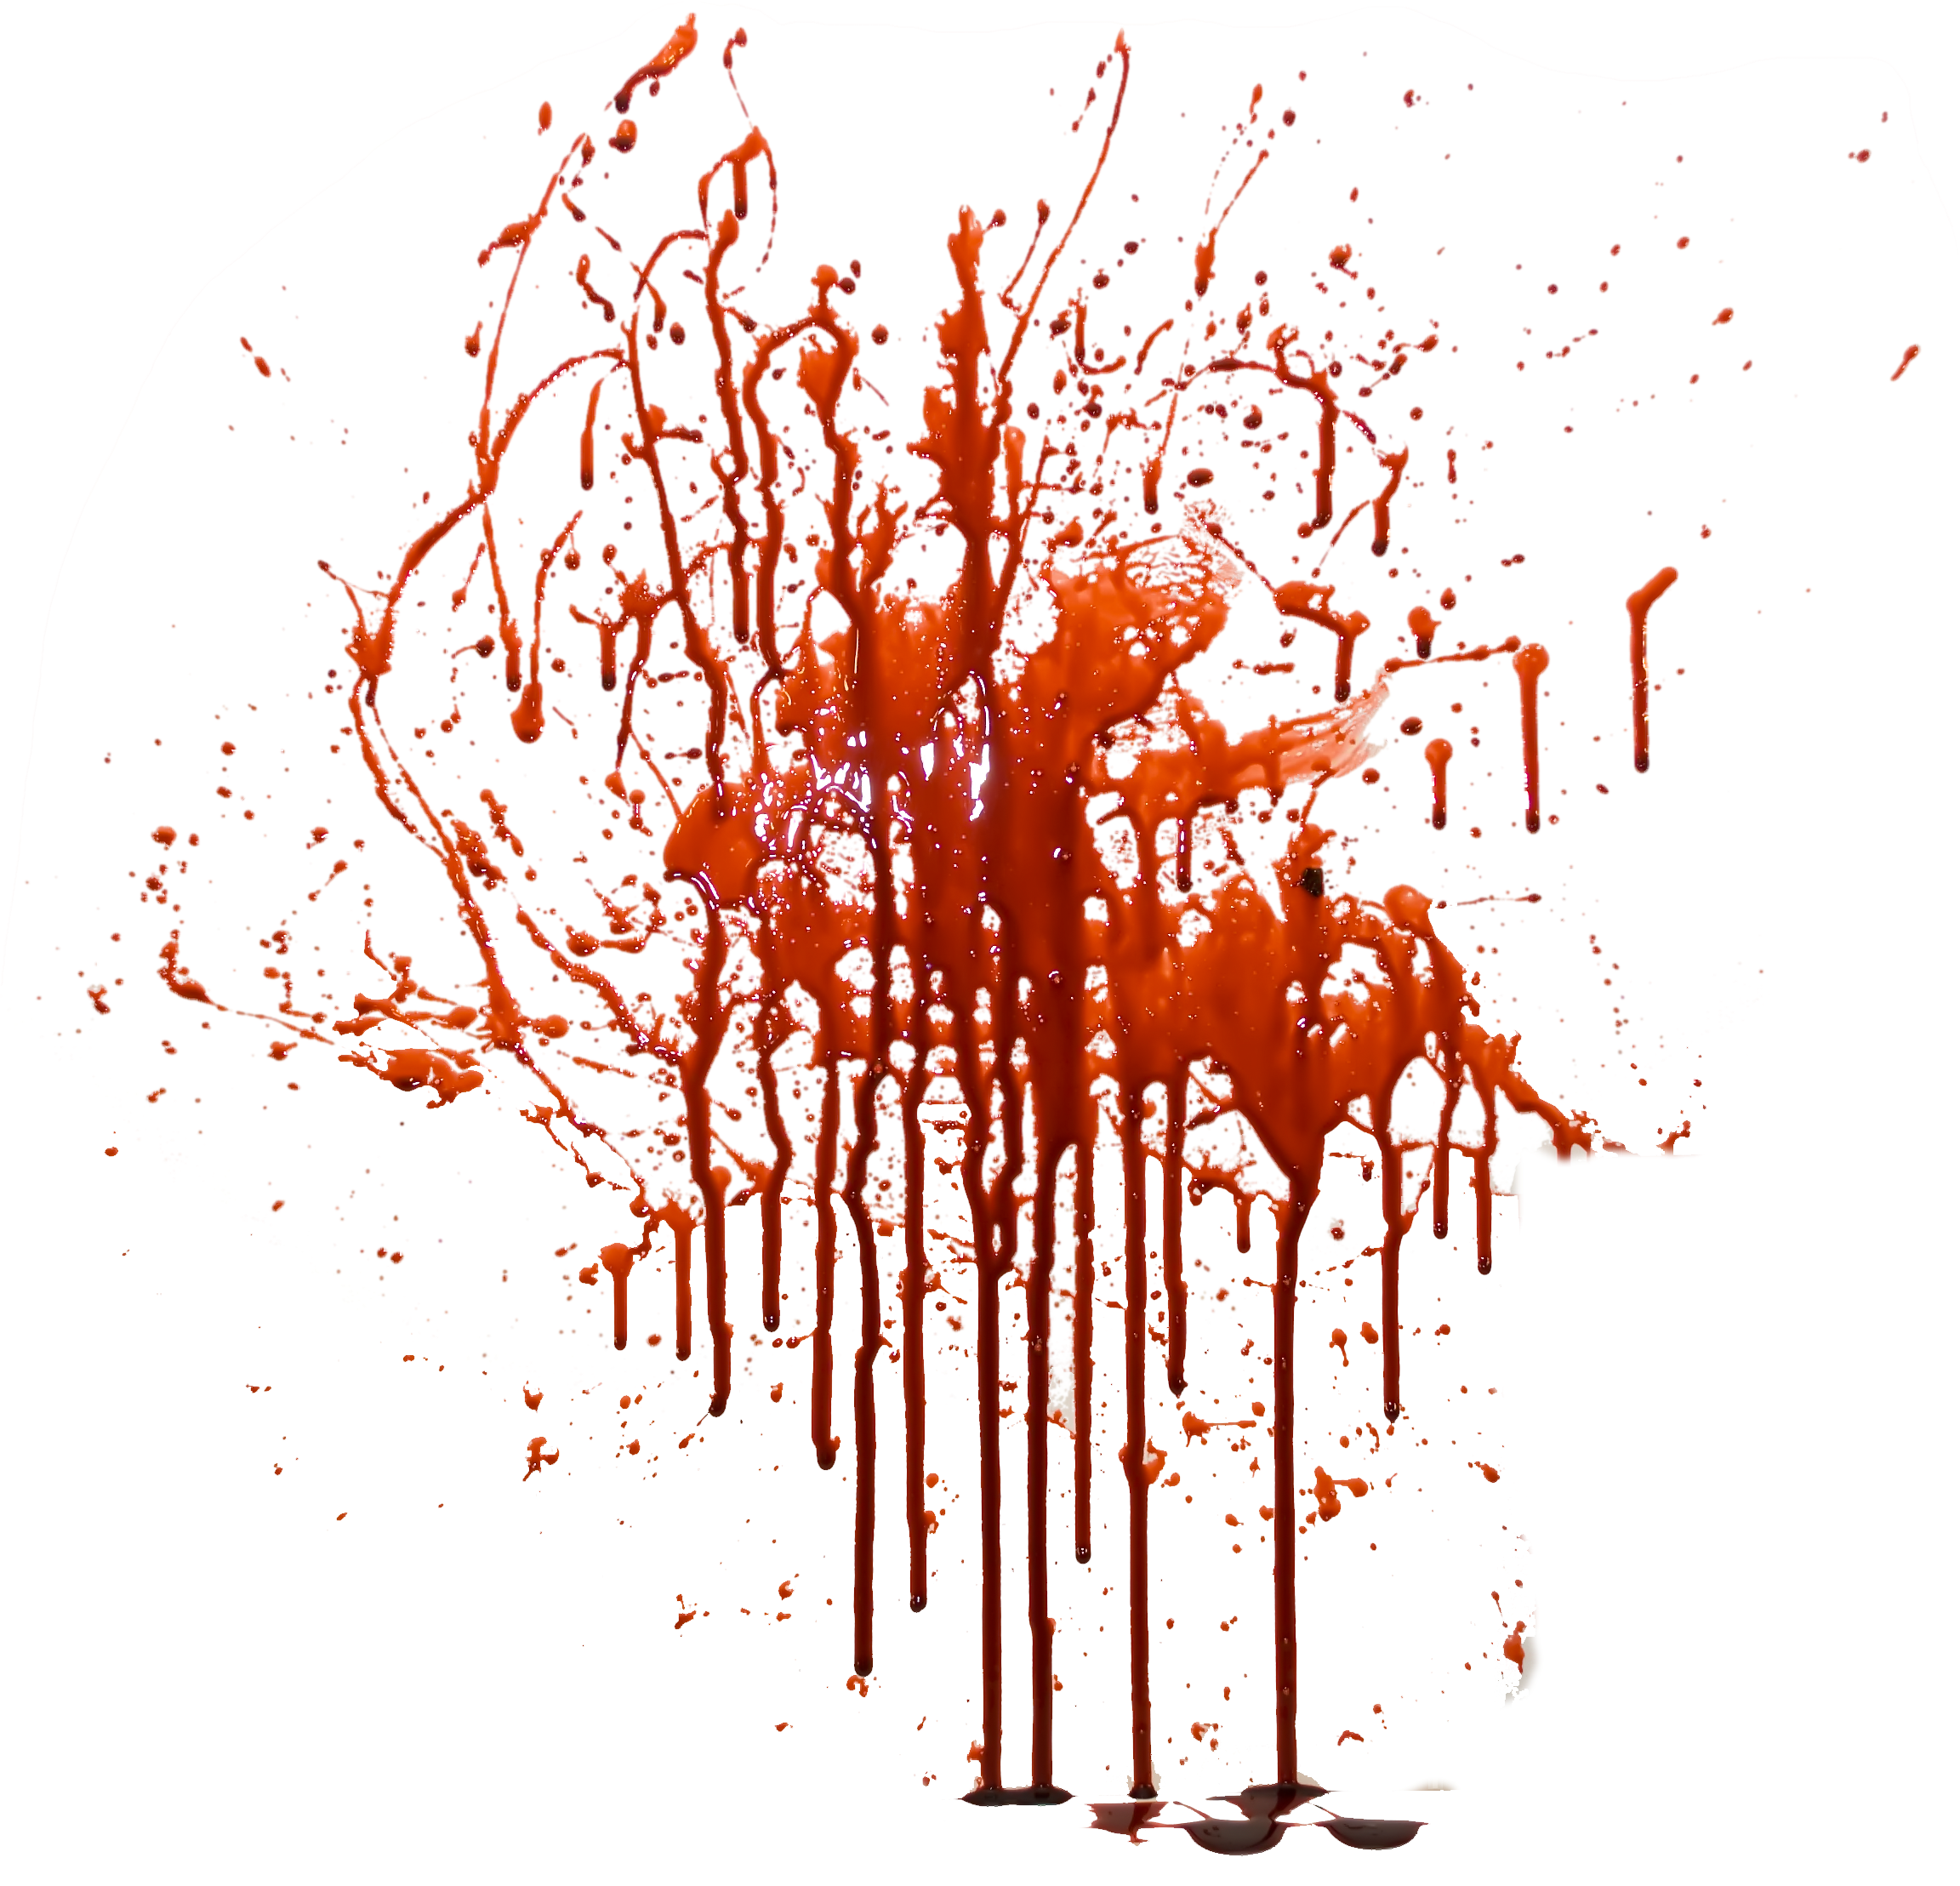 Blood stain png. Images free download splashes